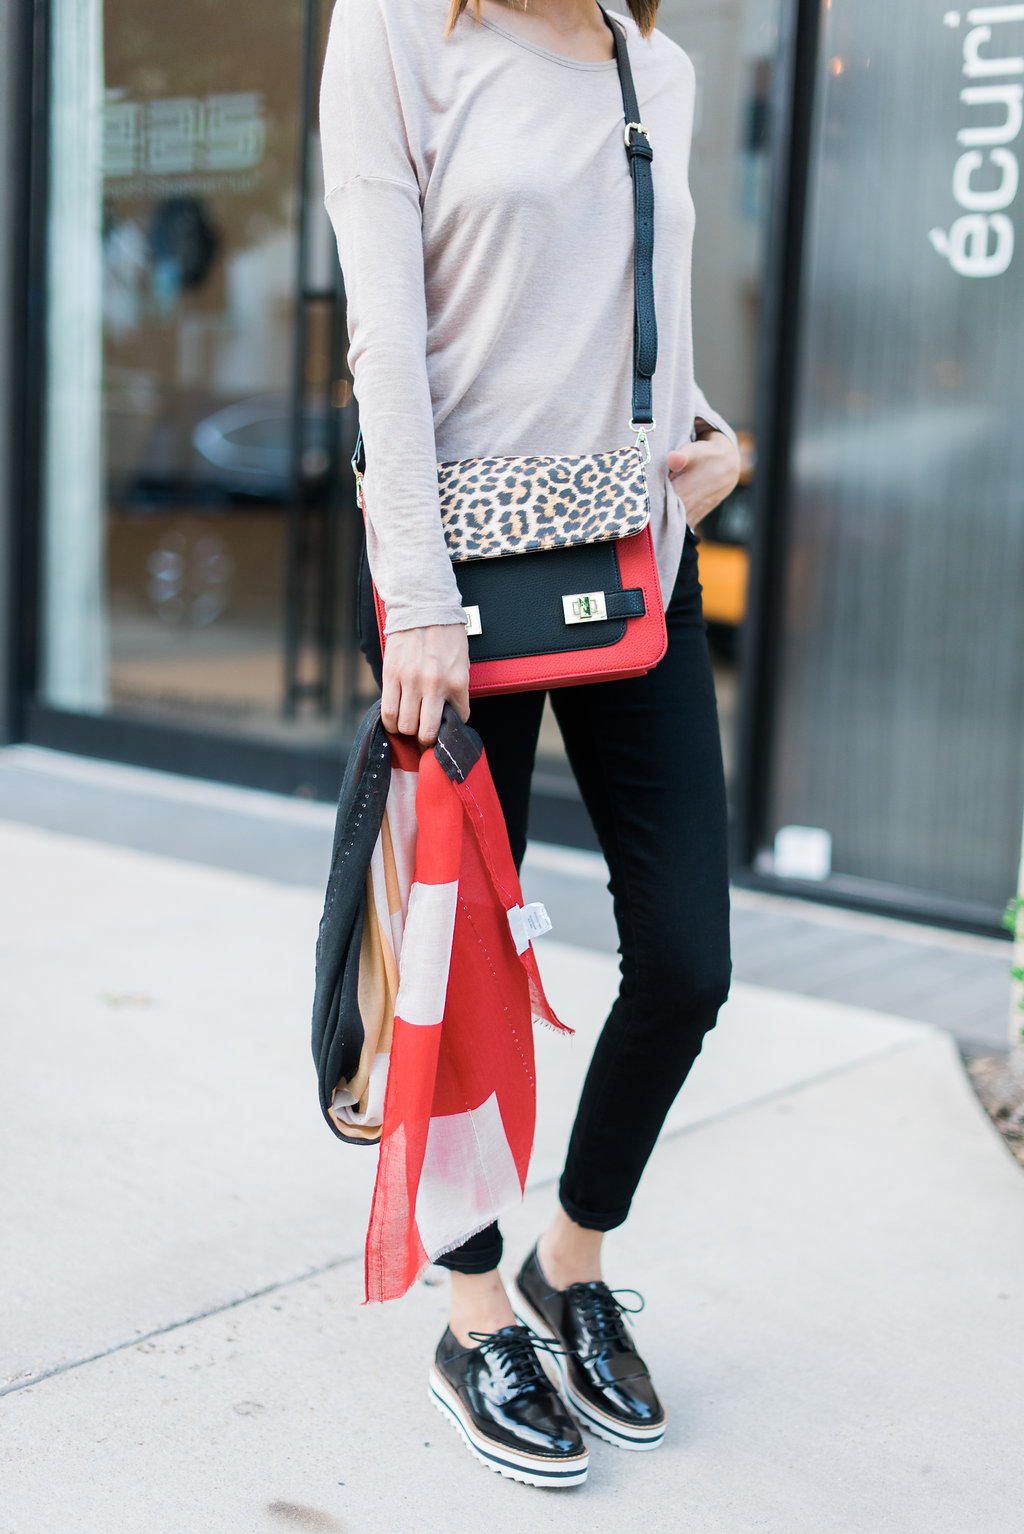 Fall Trends   Charming Charlie Accessories